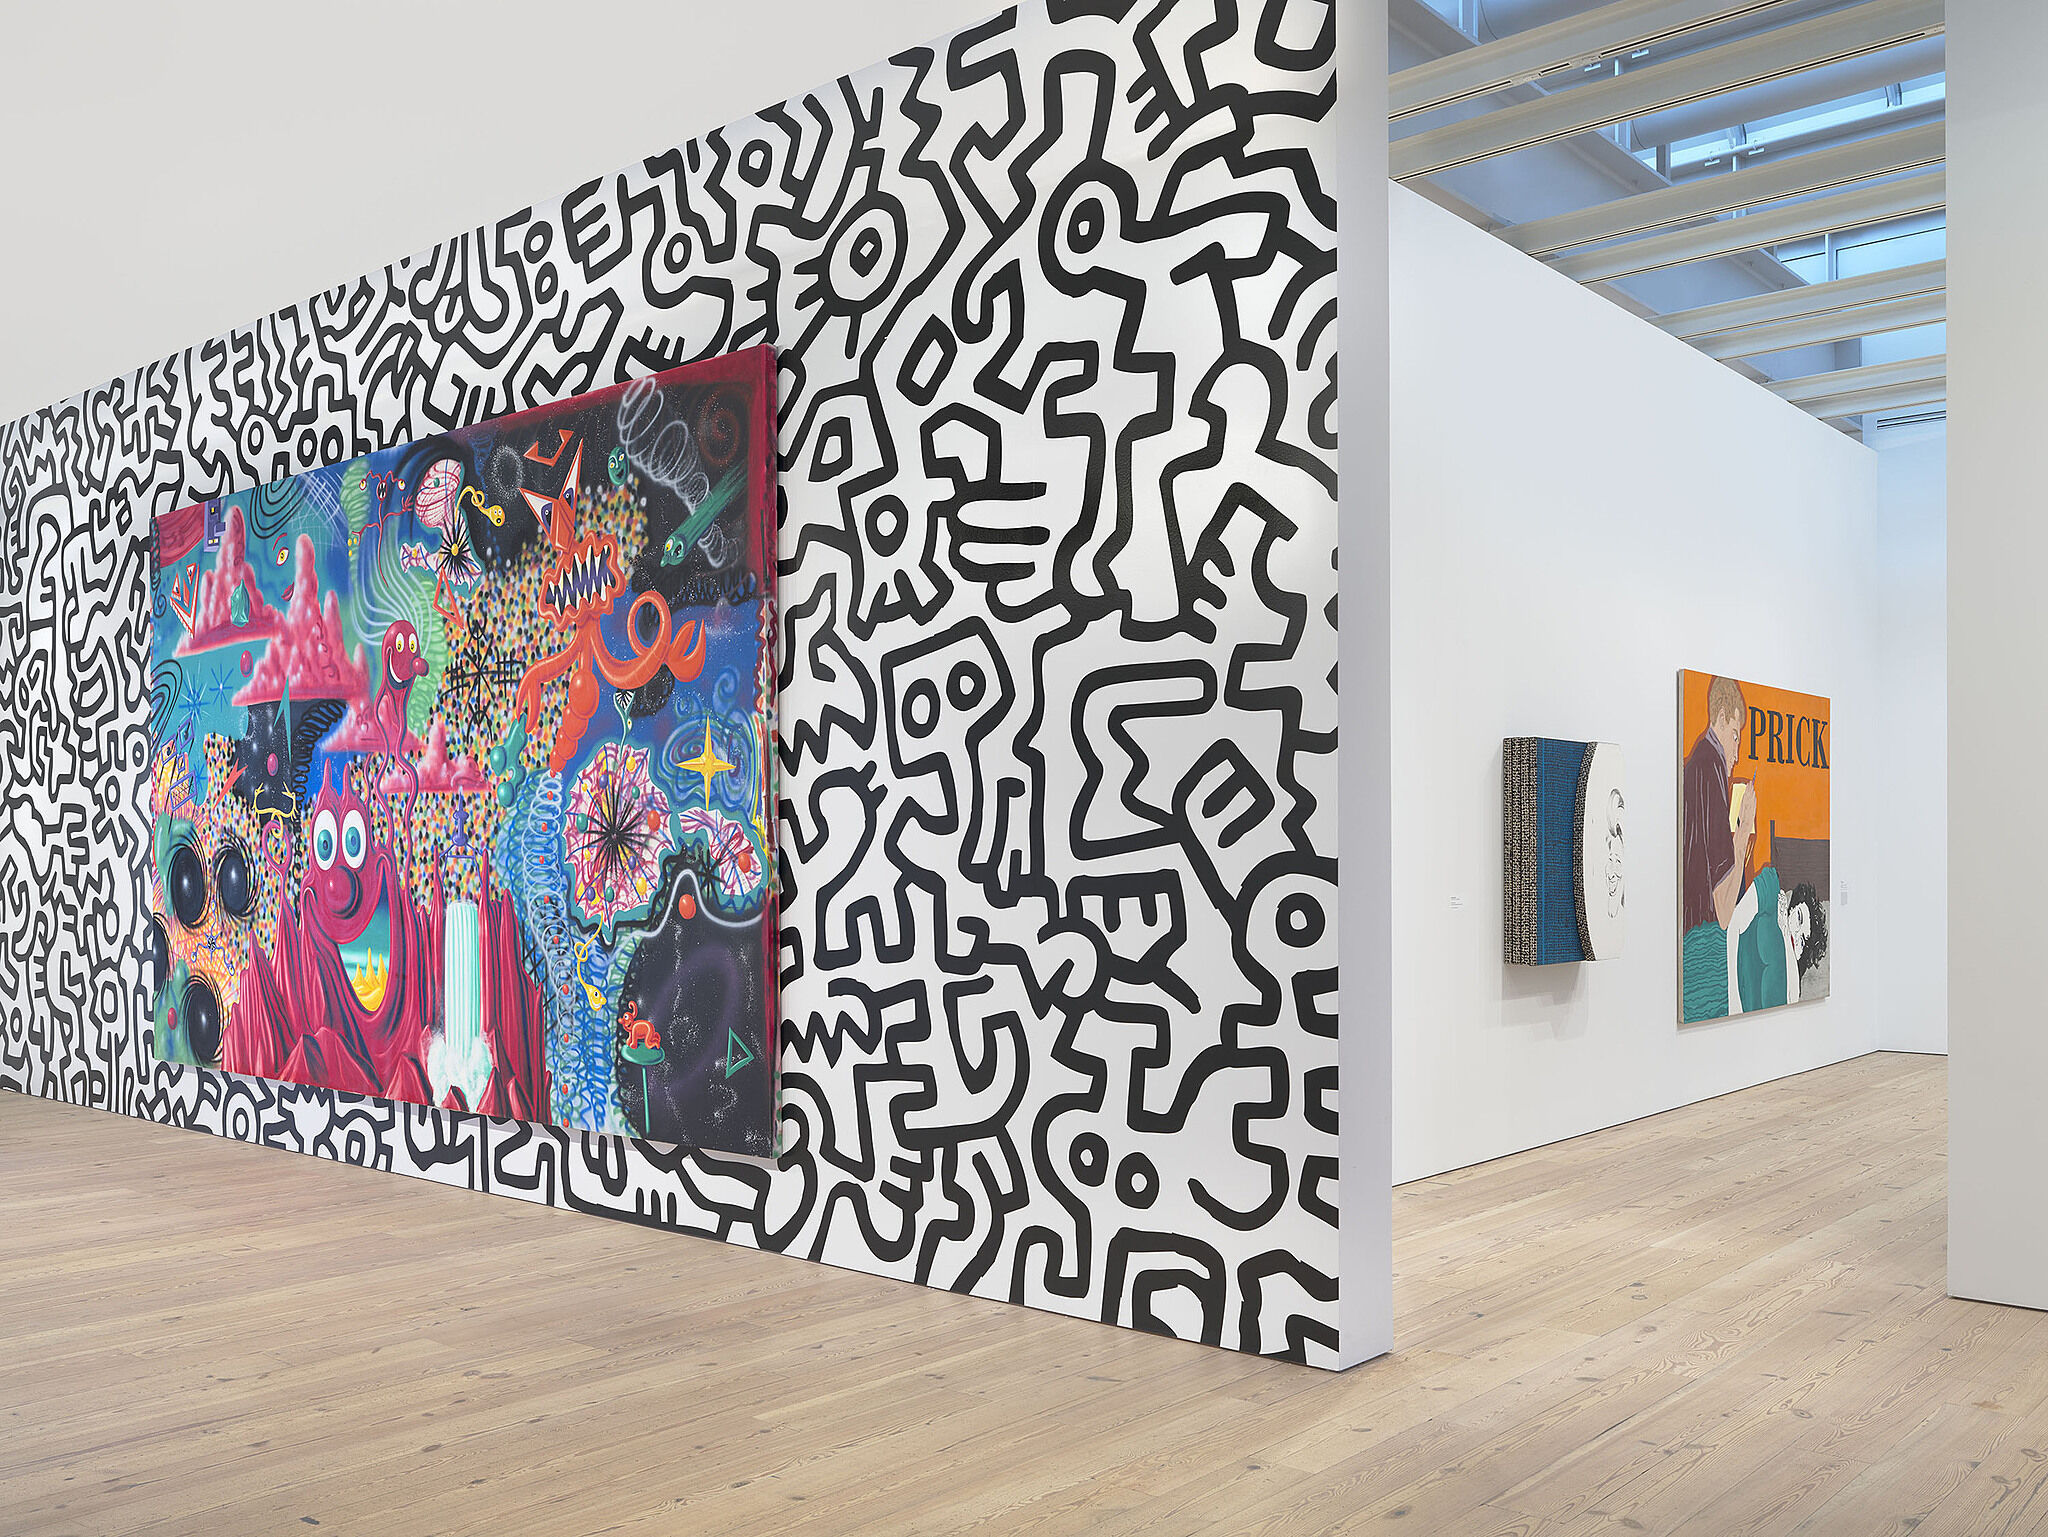 Scharf painting on a wall with Haring background.